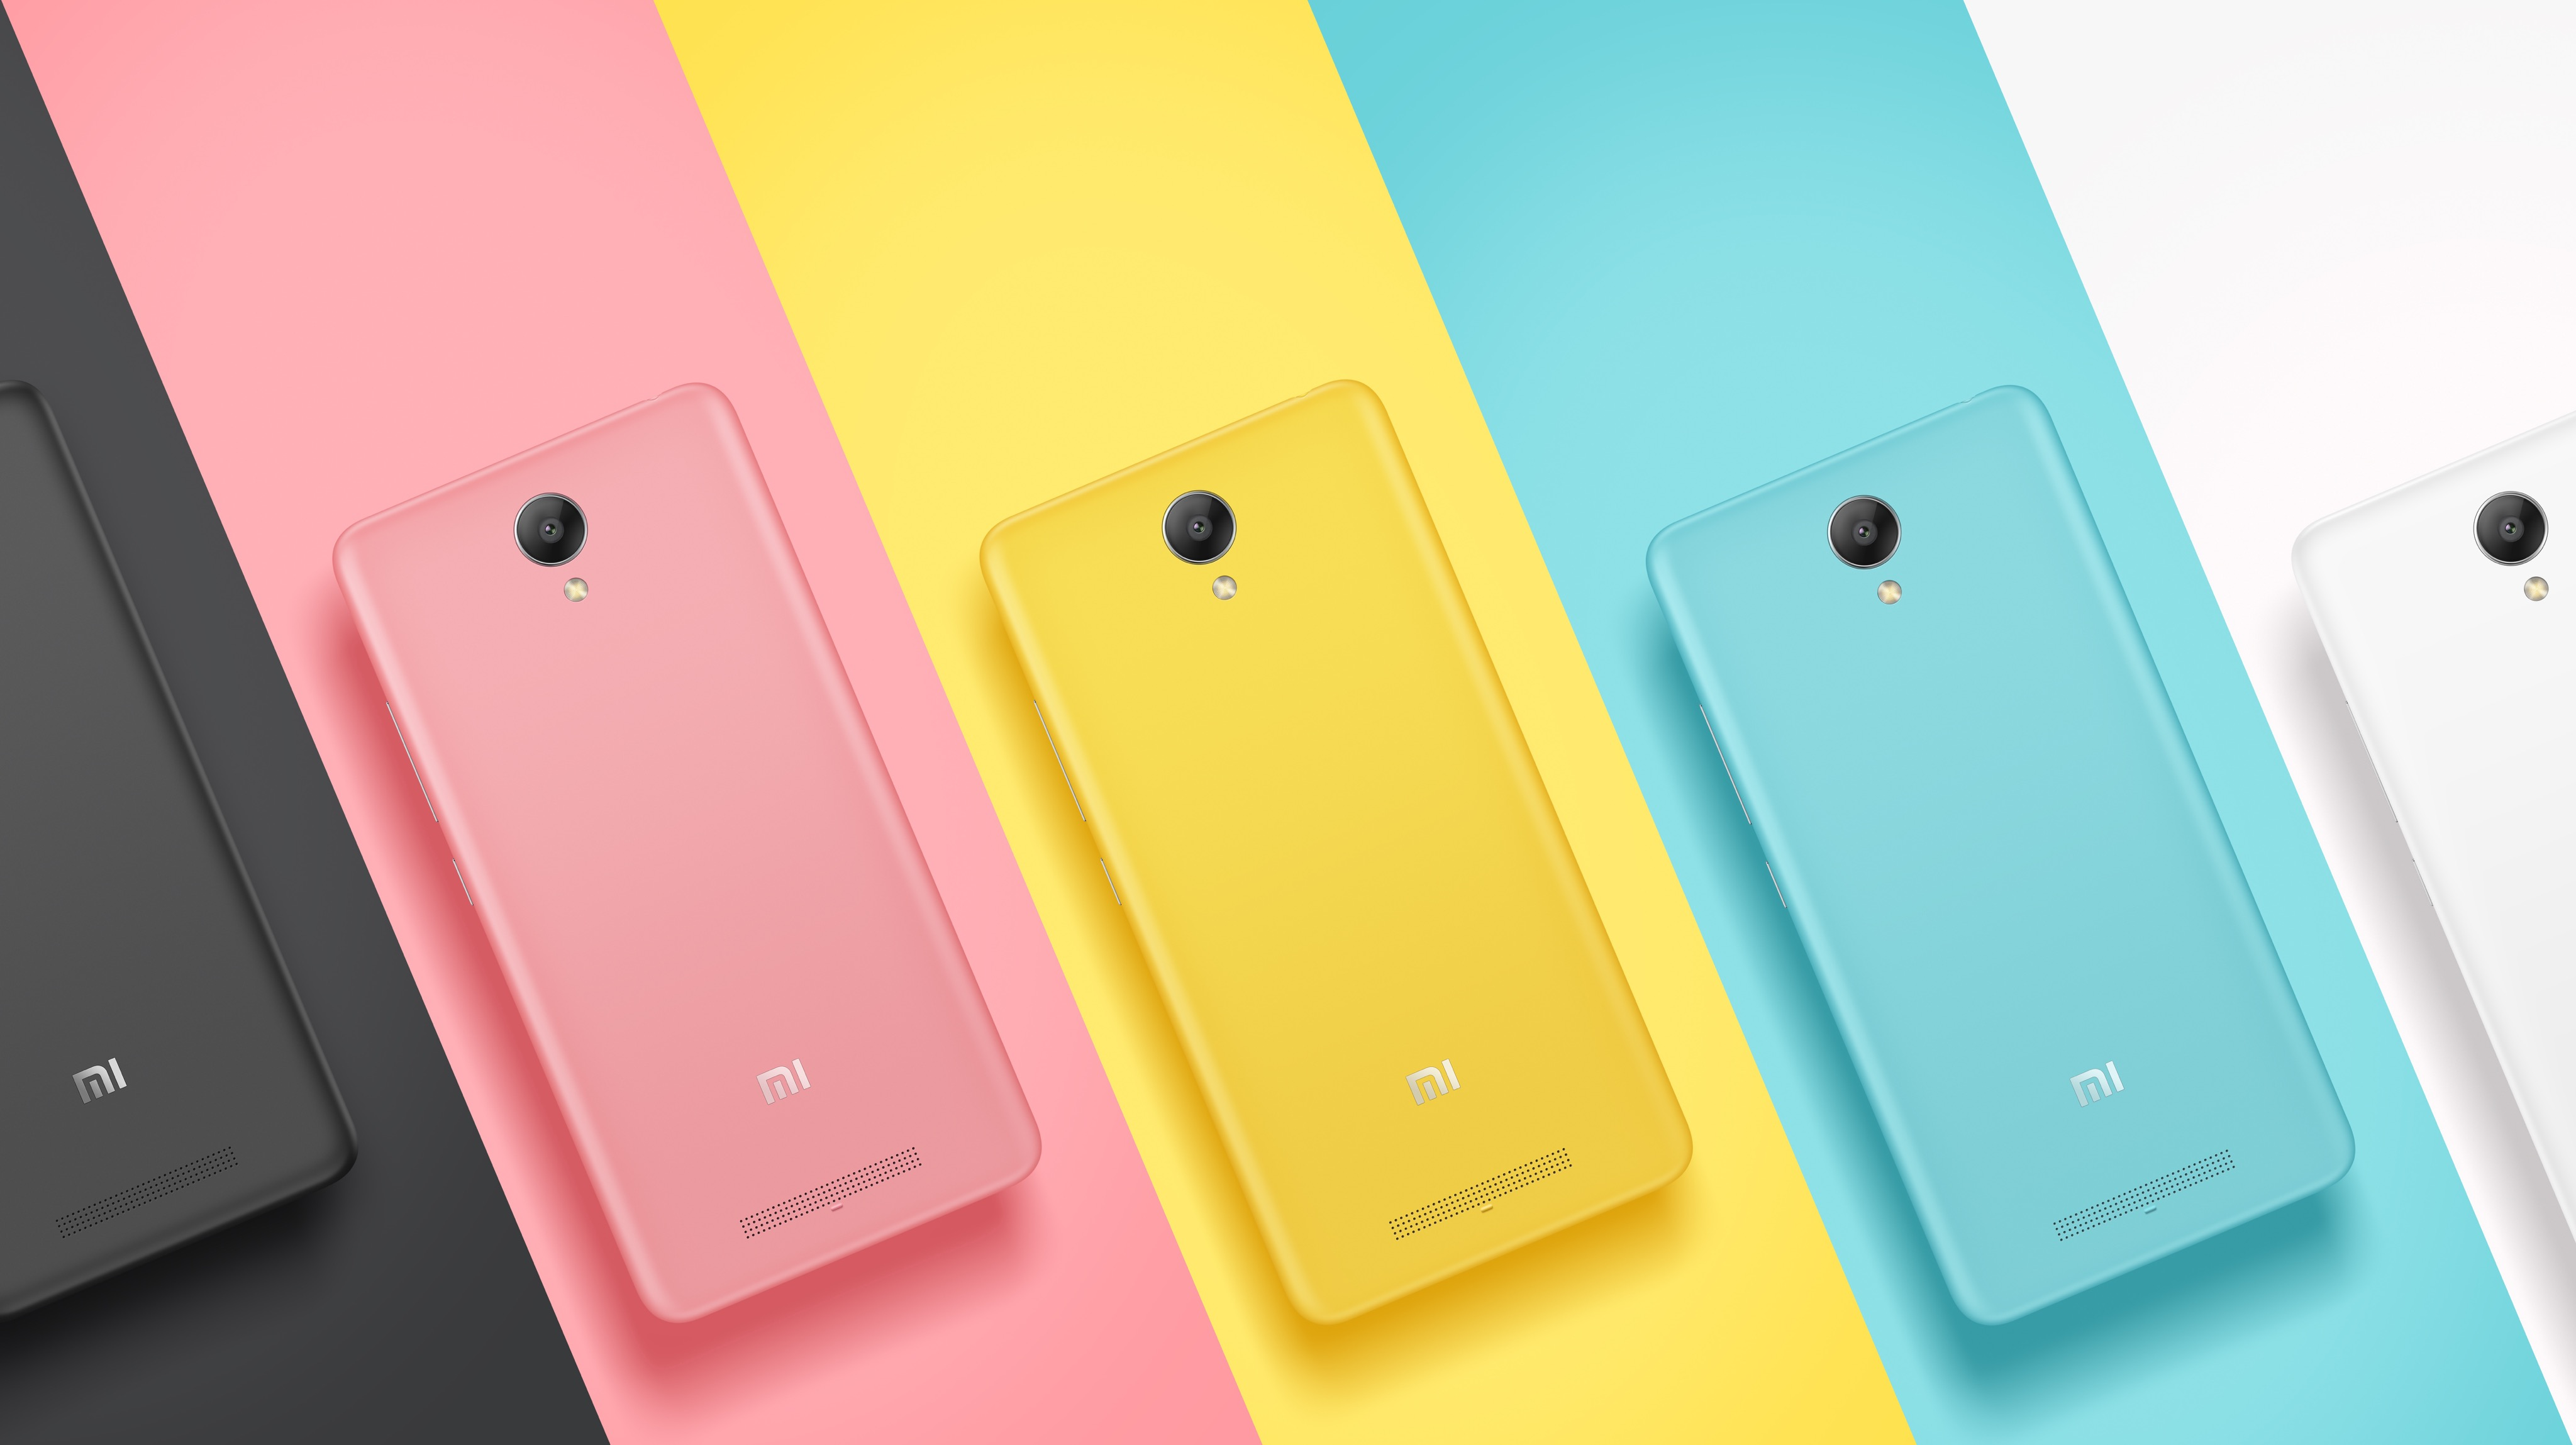 Xiaomi-Redmi-Note-2-official-images